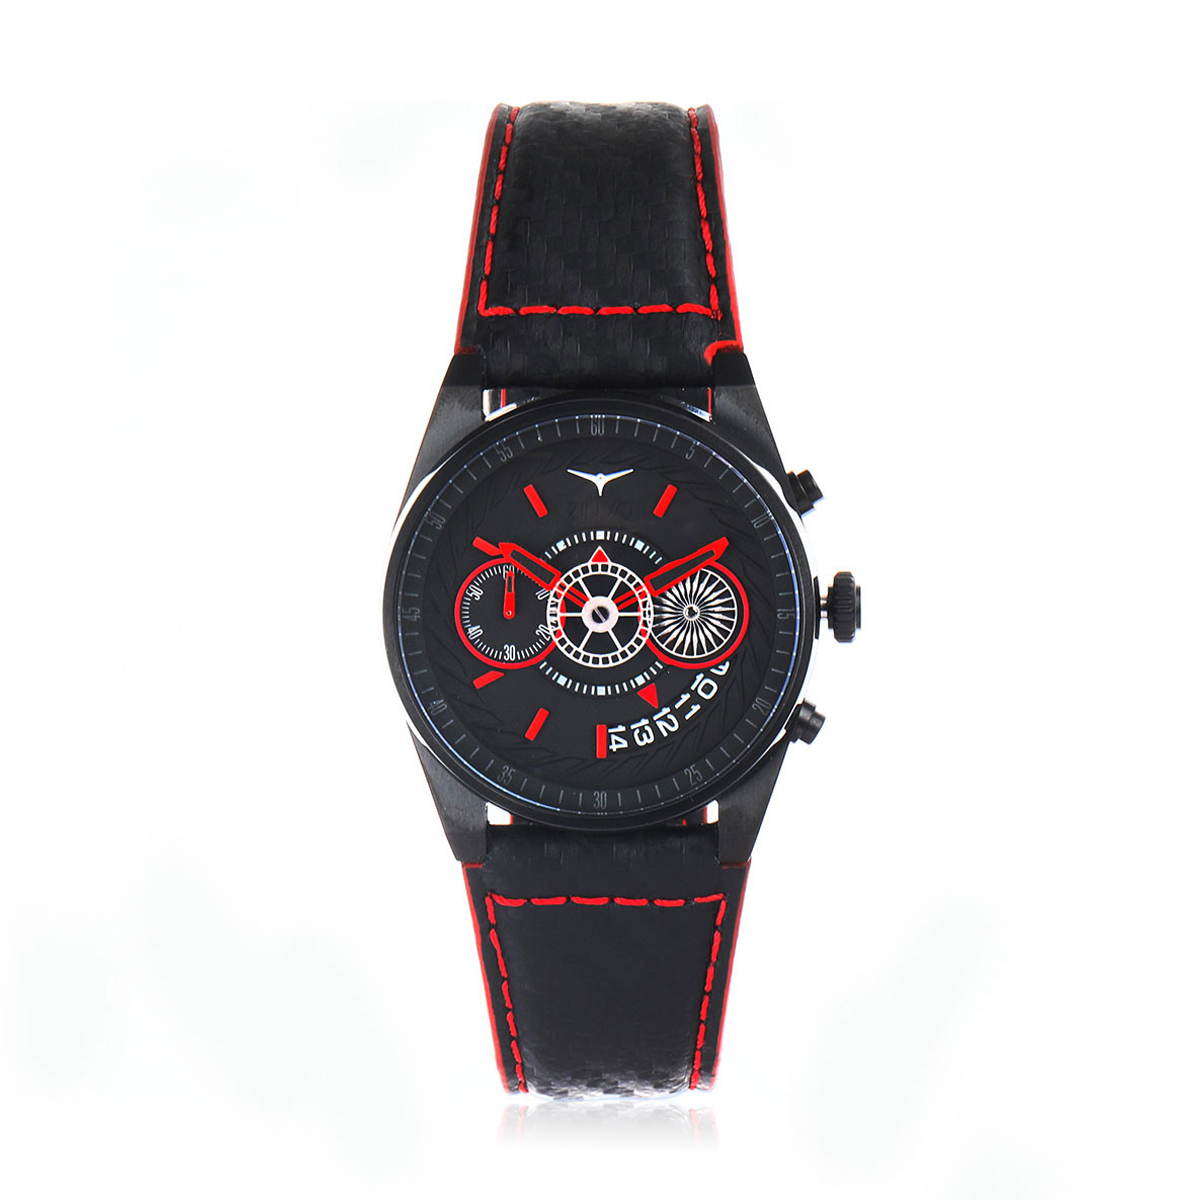 Chrono Corsa Grey Leather Quartz Watch